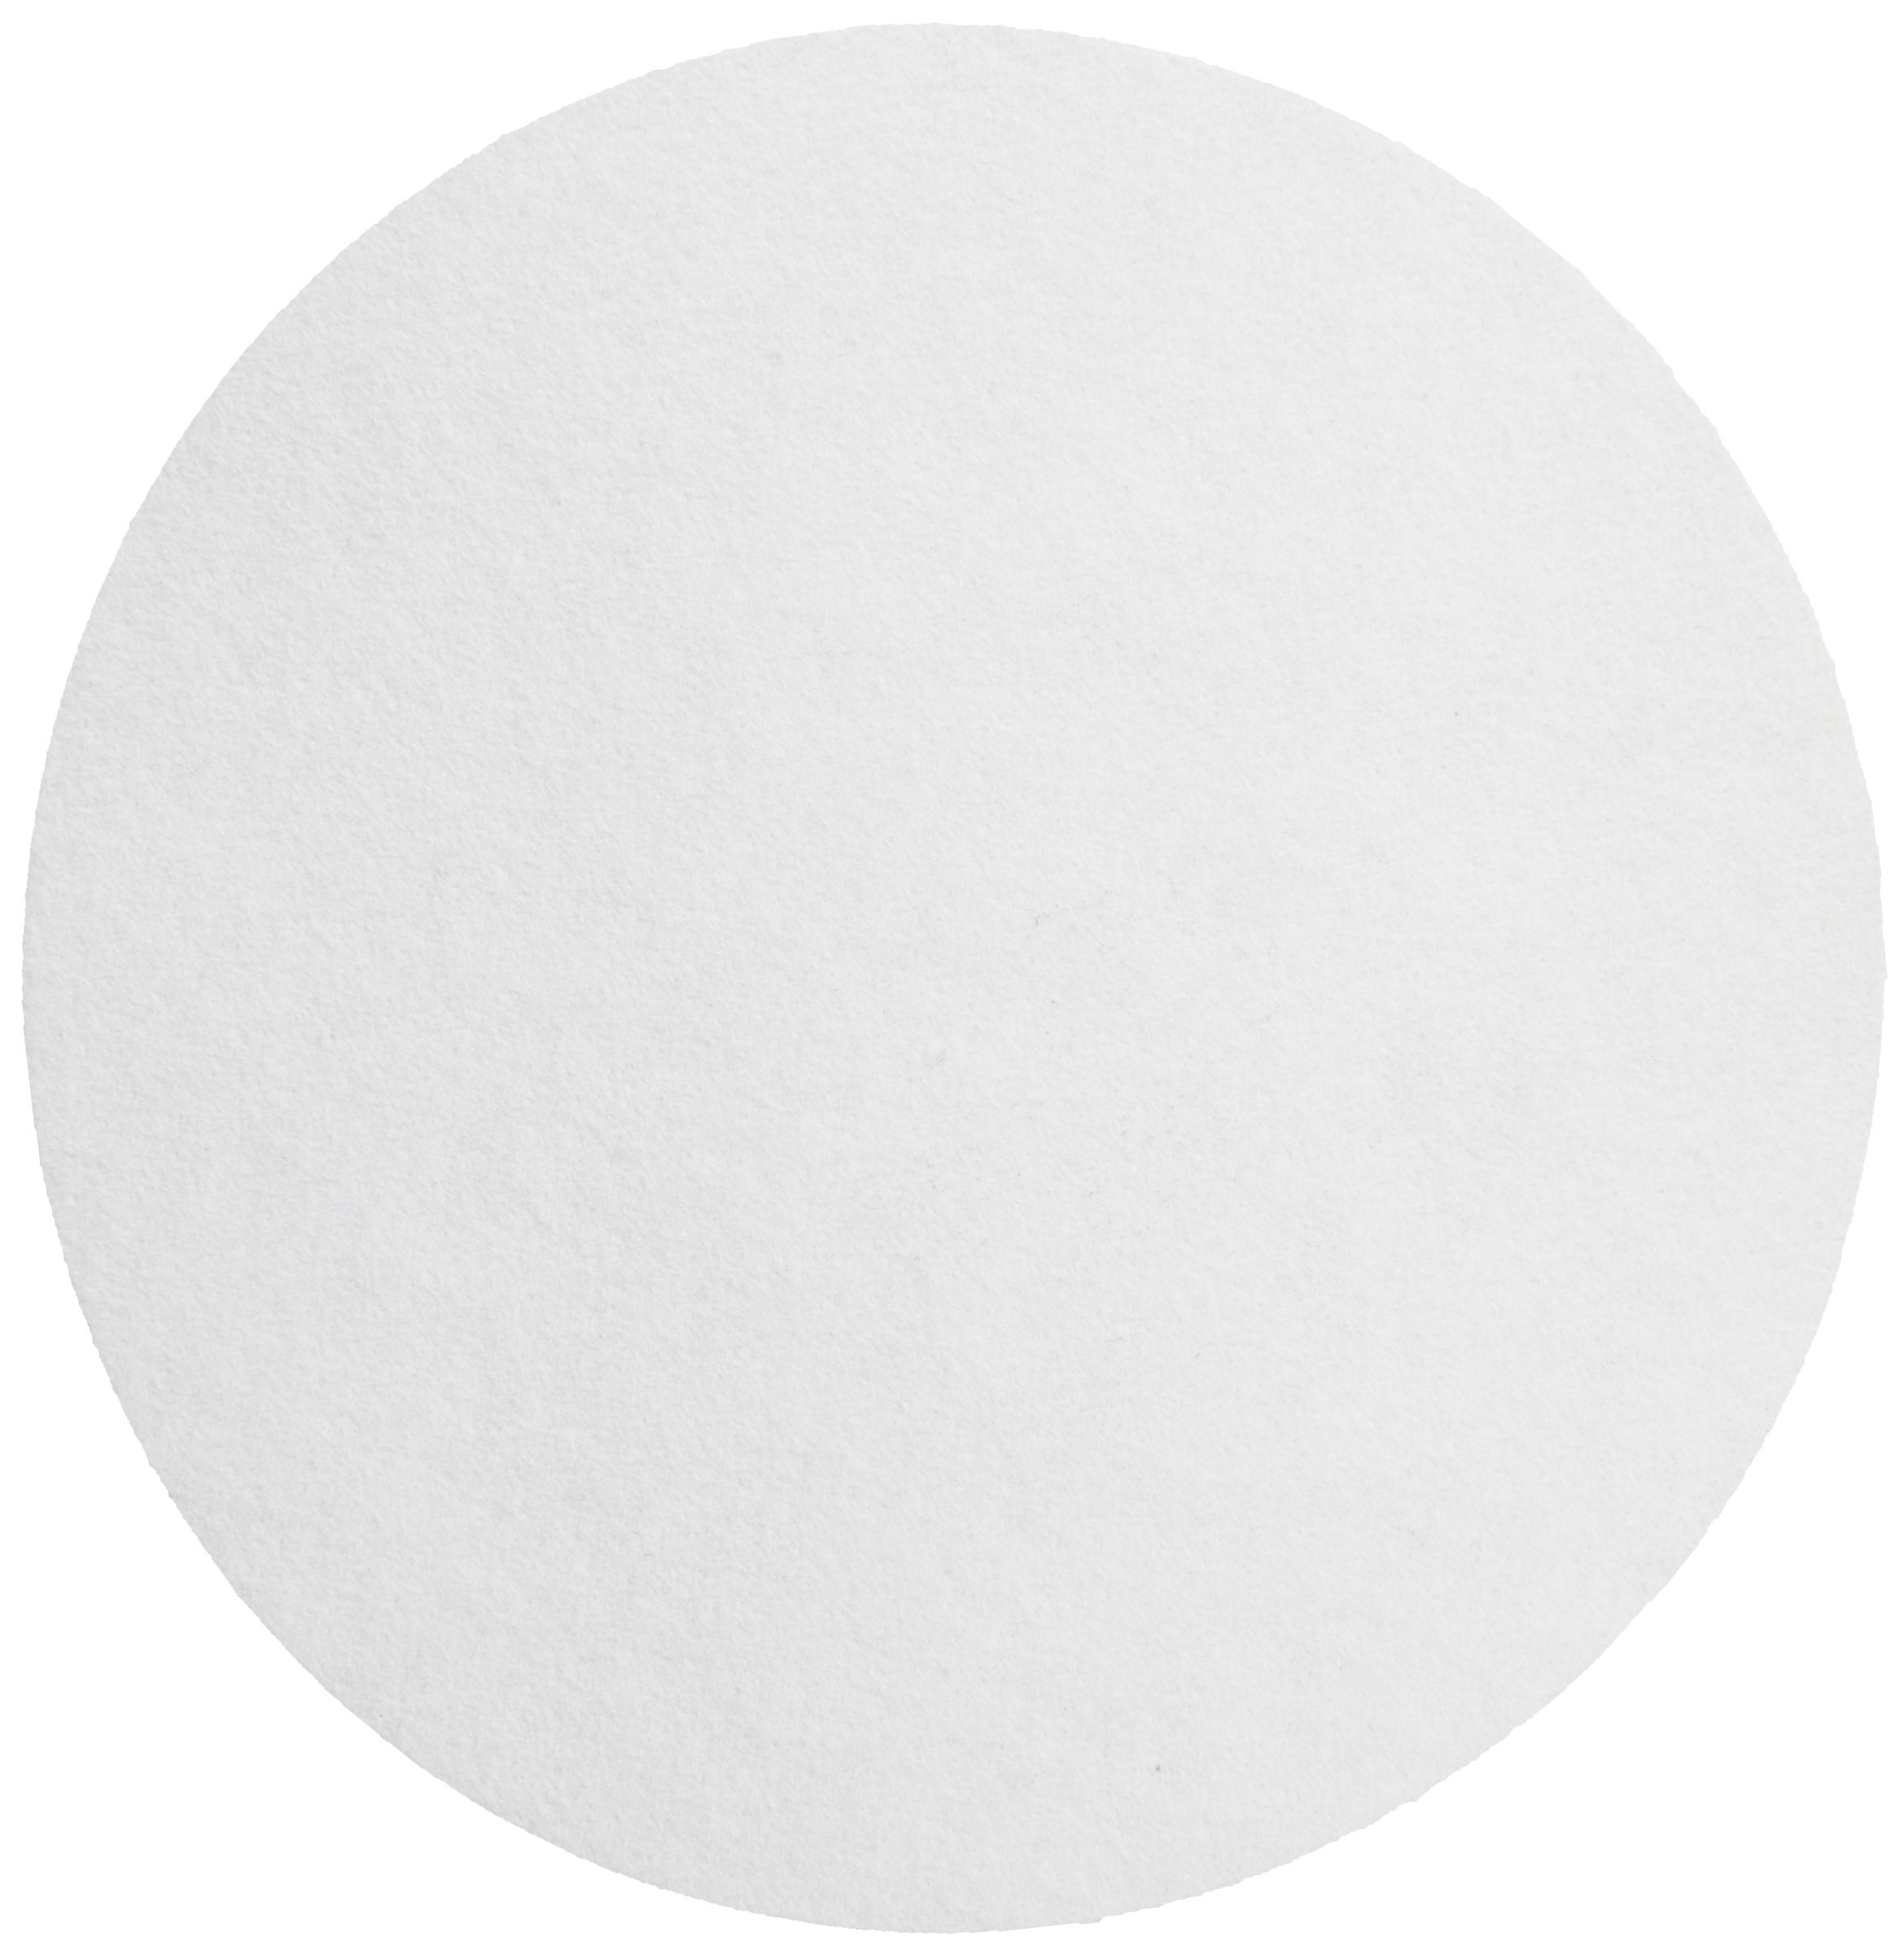 Whatman 1444-090 Ashless Quantitative Filter Paper, 9.0cm Diameter, 3 Micron, Grade 44 (Pack of 100) by Whatman